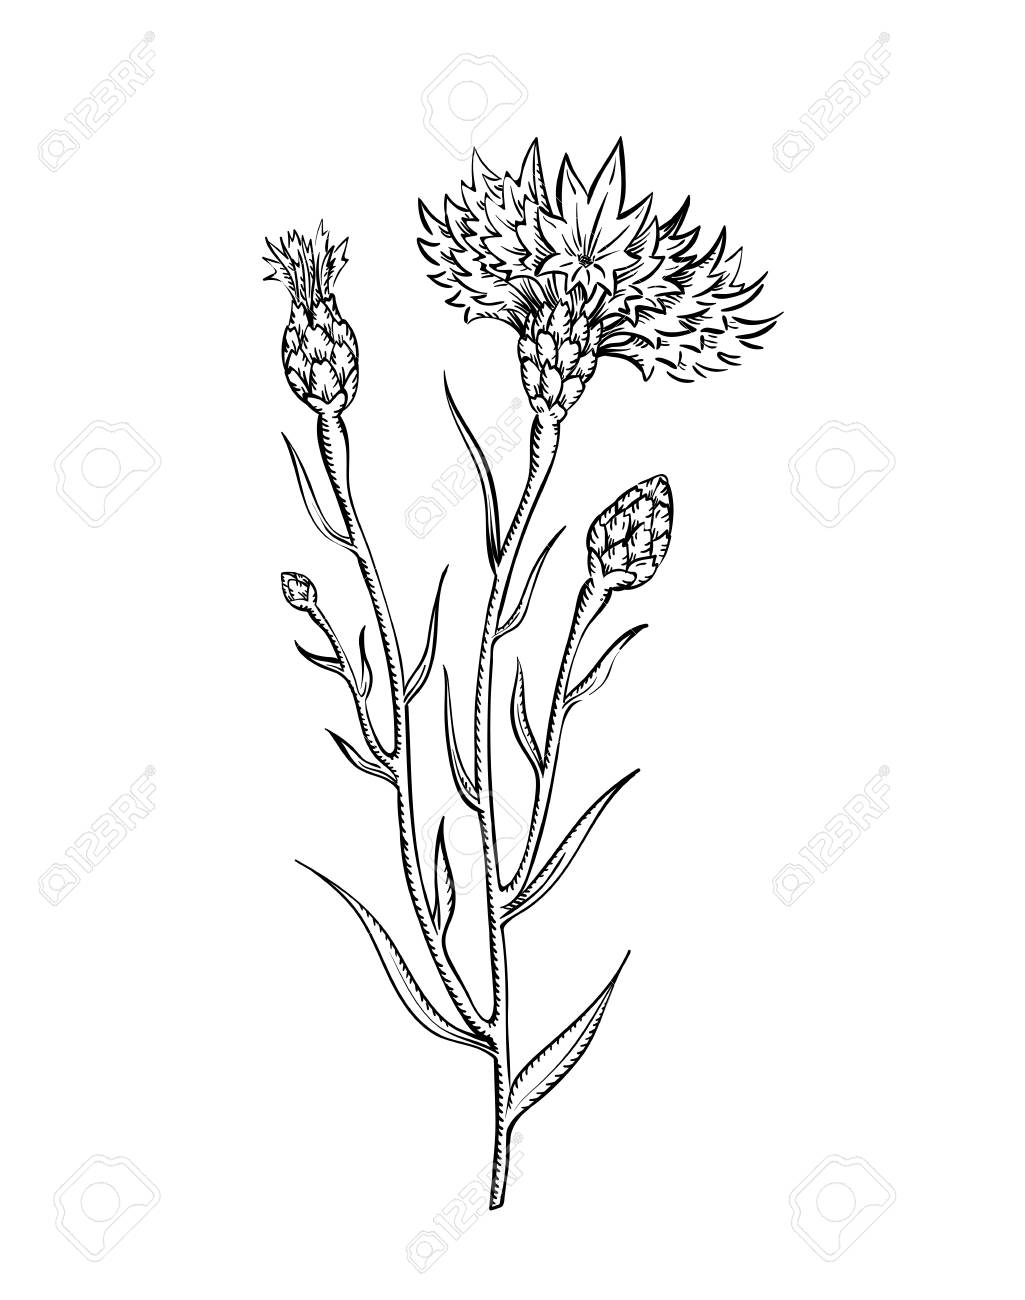 illustration of cornflower twig, sketch in vintage botanical